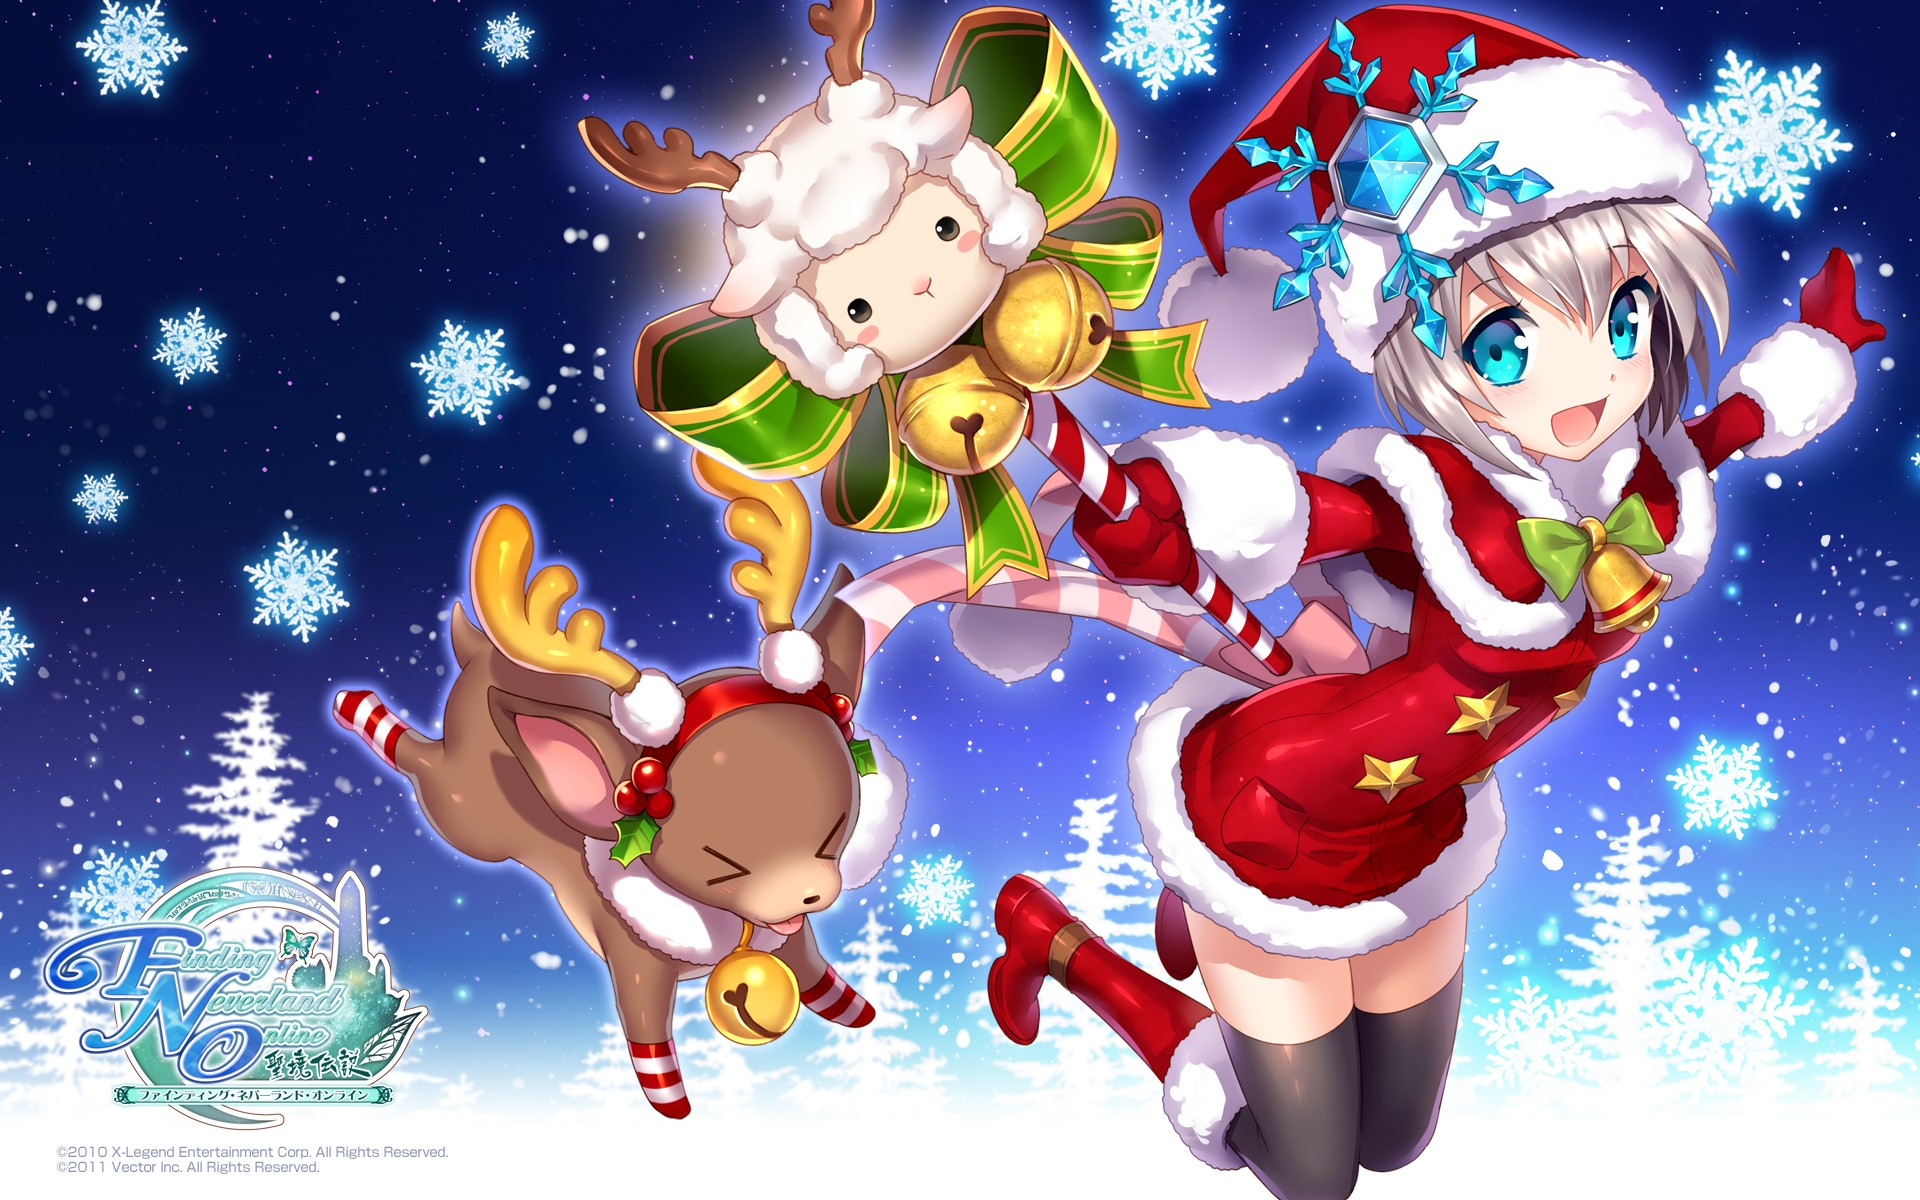 Anime Christmas Wallpaper Download Free Awesome Hd Backgrounds